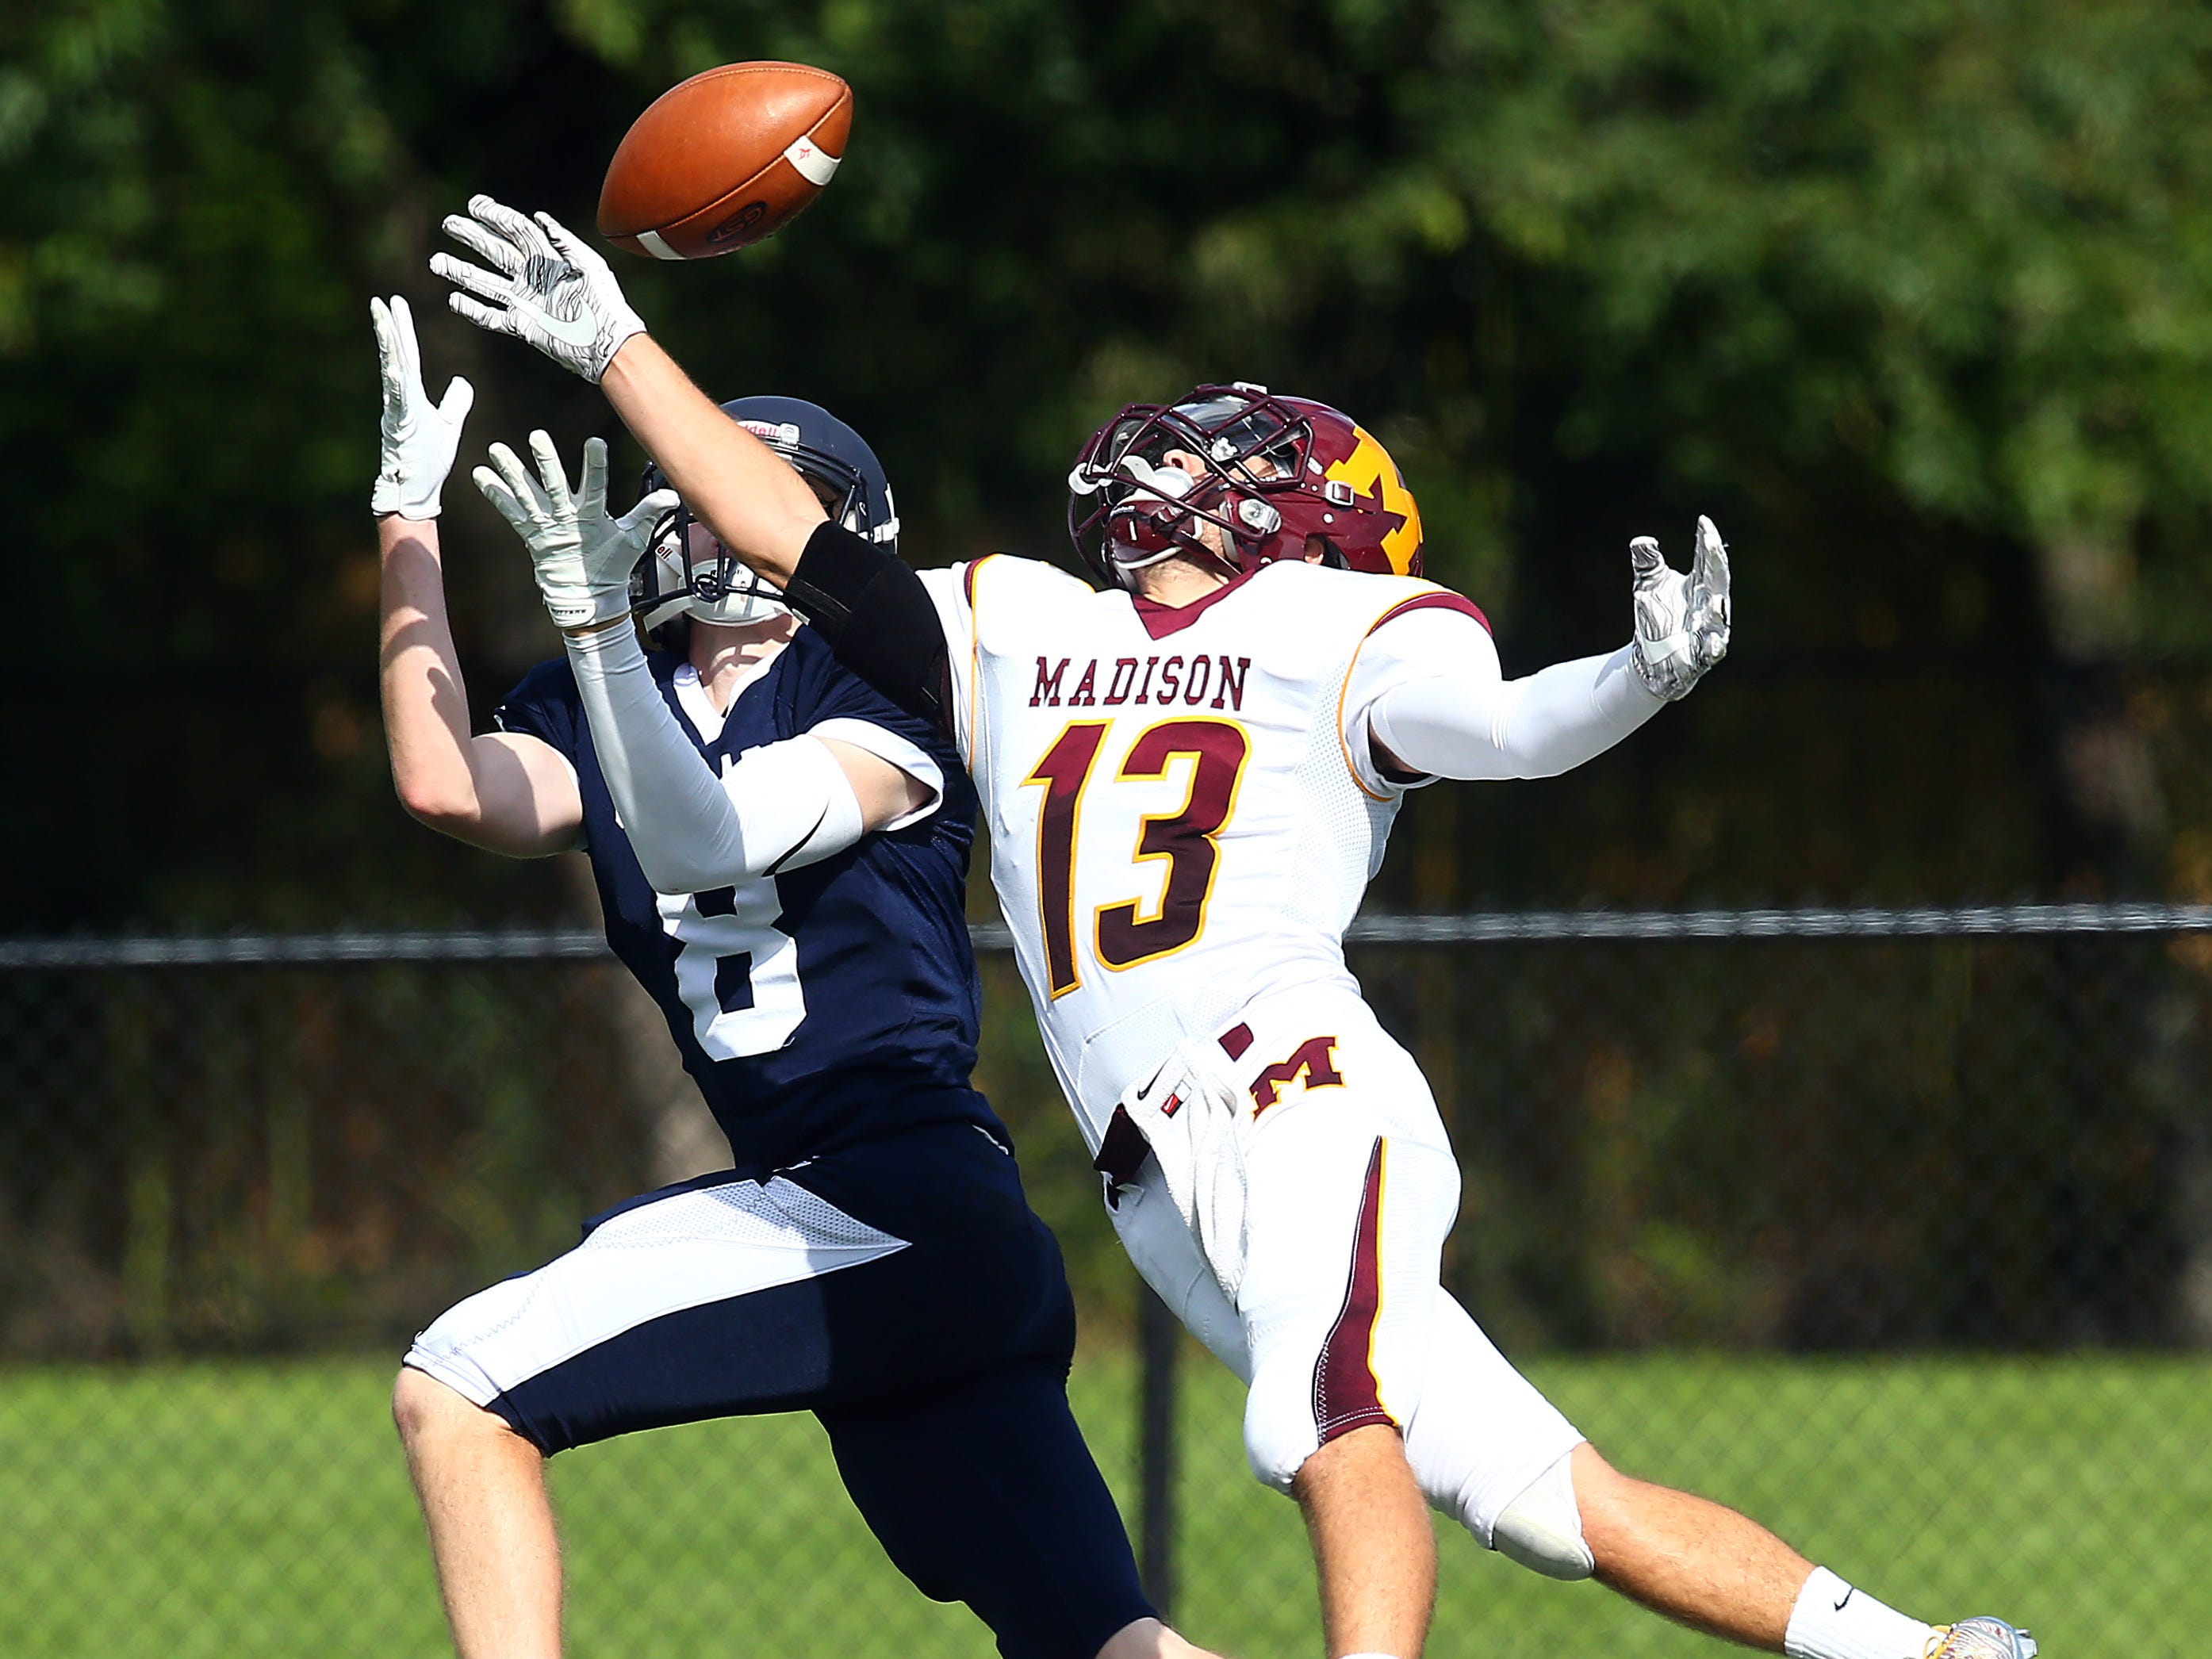 Madison's Brendan Quinn breaks up a deep pass to Chatham intended receiver Shane Carlin during their SFC American White Saturday football game. September 29, 2018, Chatham, NJ